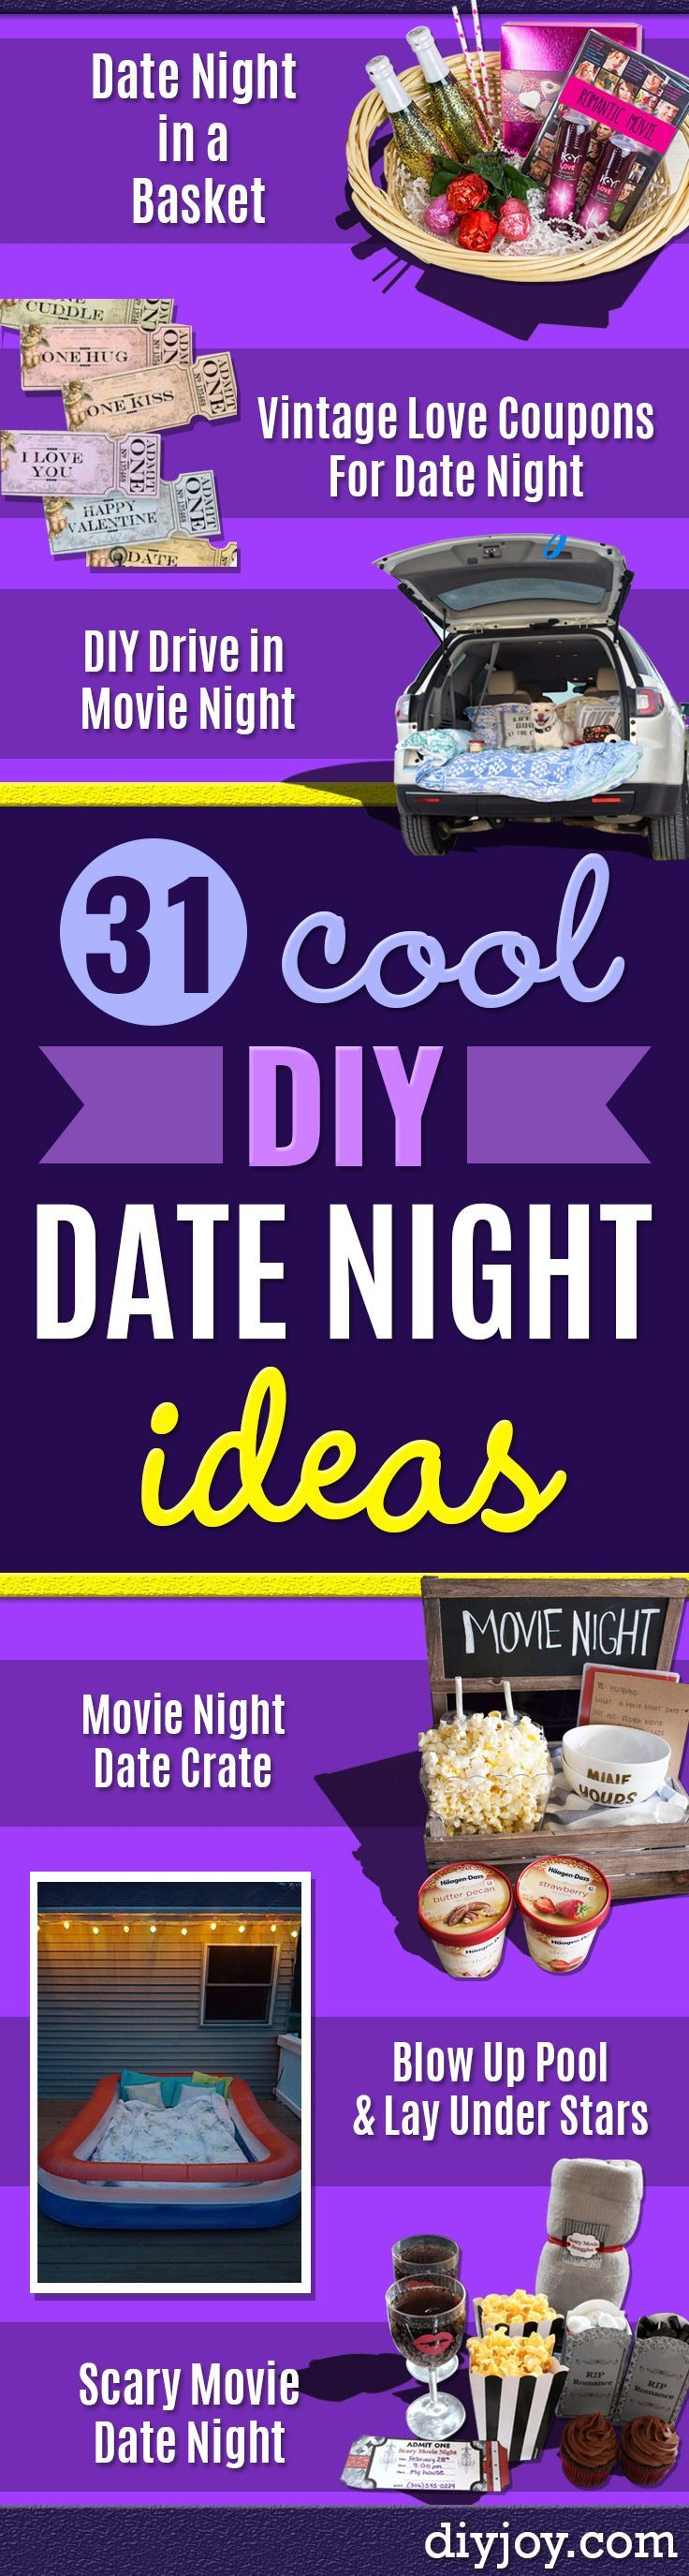 Awesome date ideas in Perth